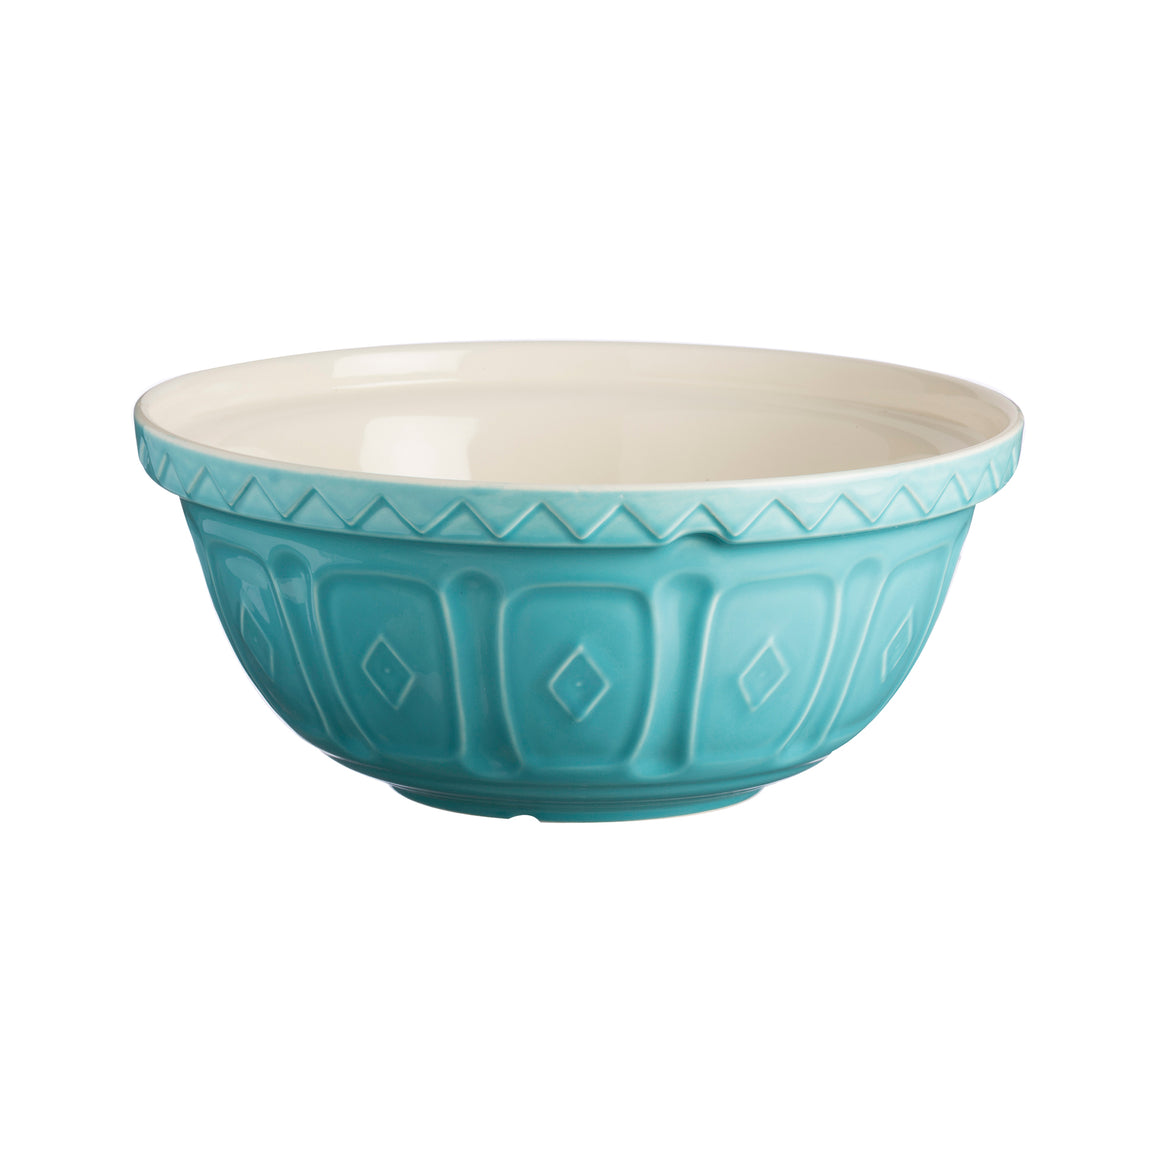 Colour Mix S12 Turqoise Mixing Bowl 29cm - Mason Cash - 2001.833